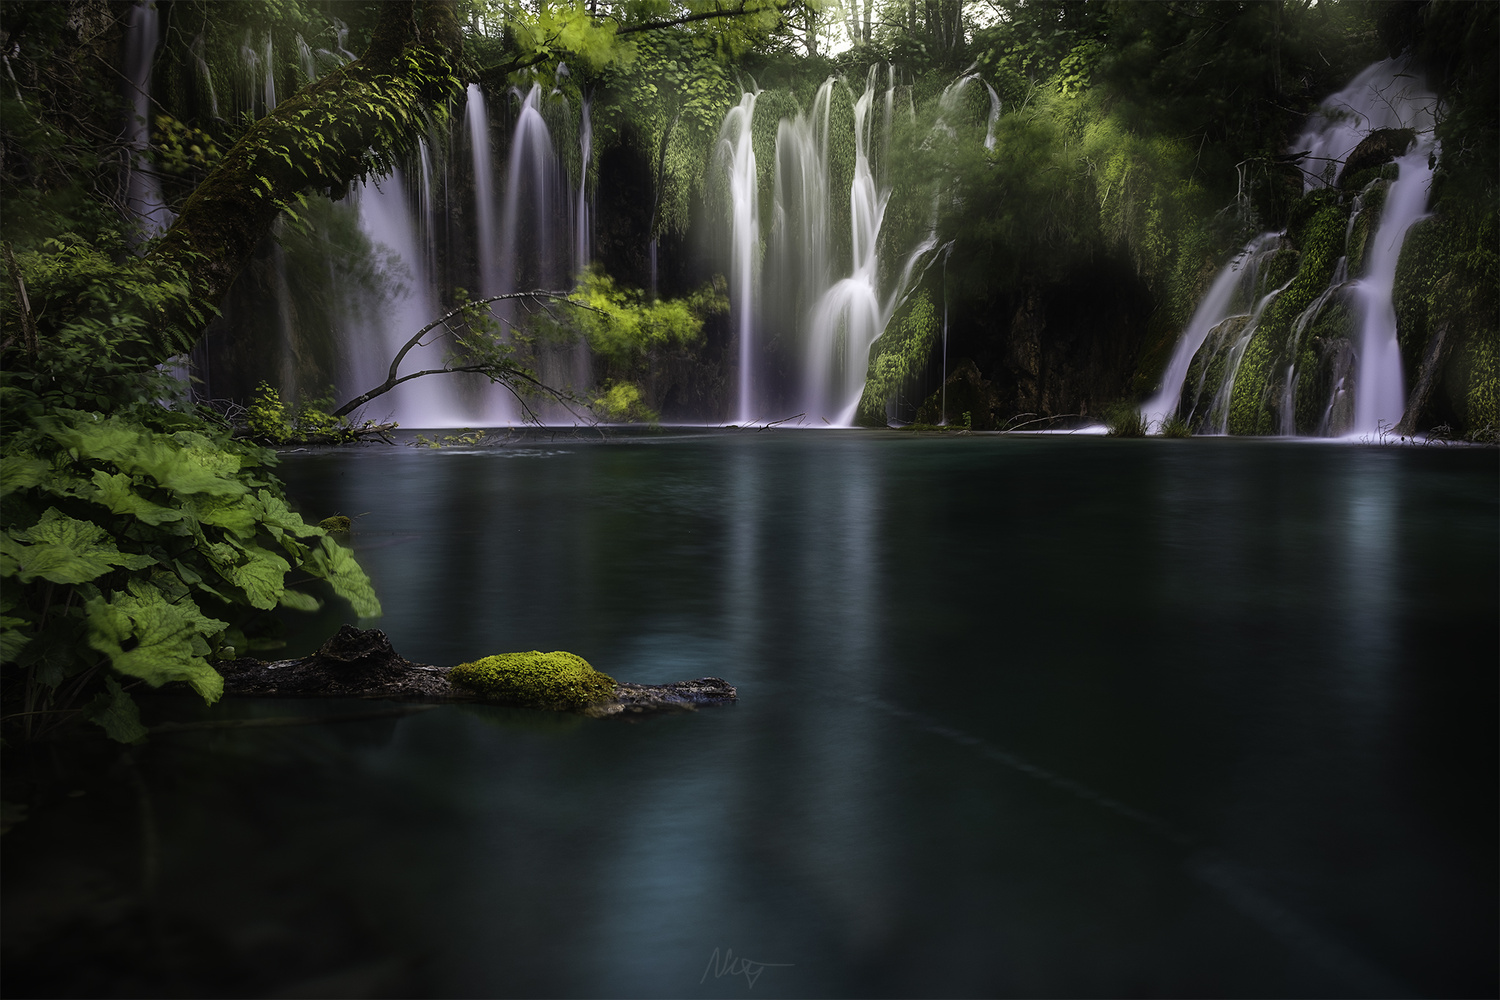 Enchanted waterfall by Nejc Trpin